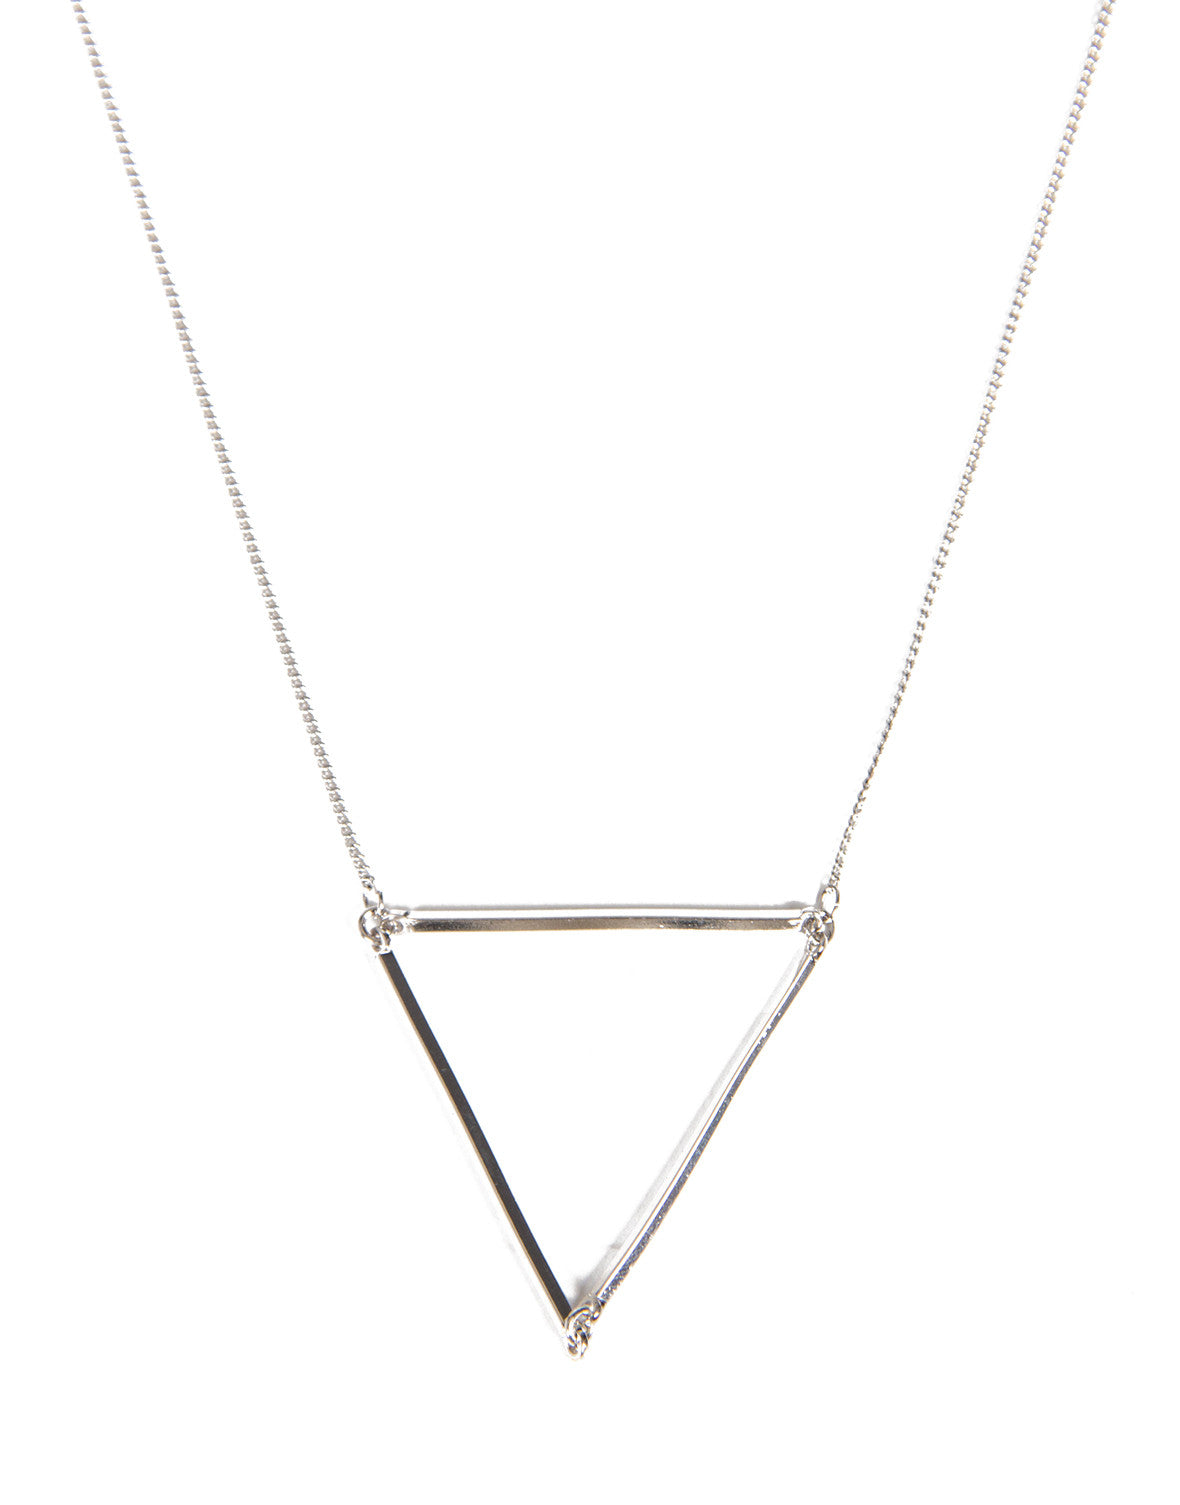 Skinny Triangle Pendant Necklace - Silver